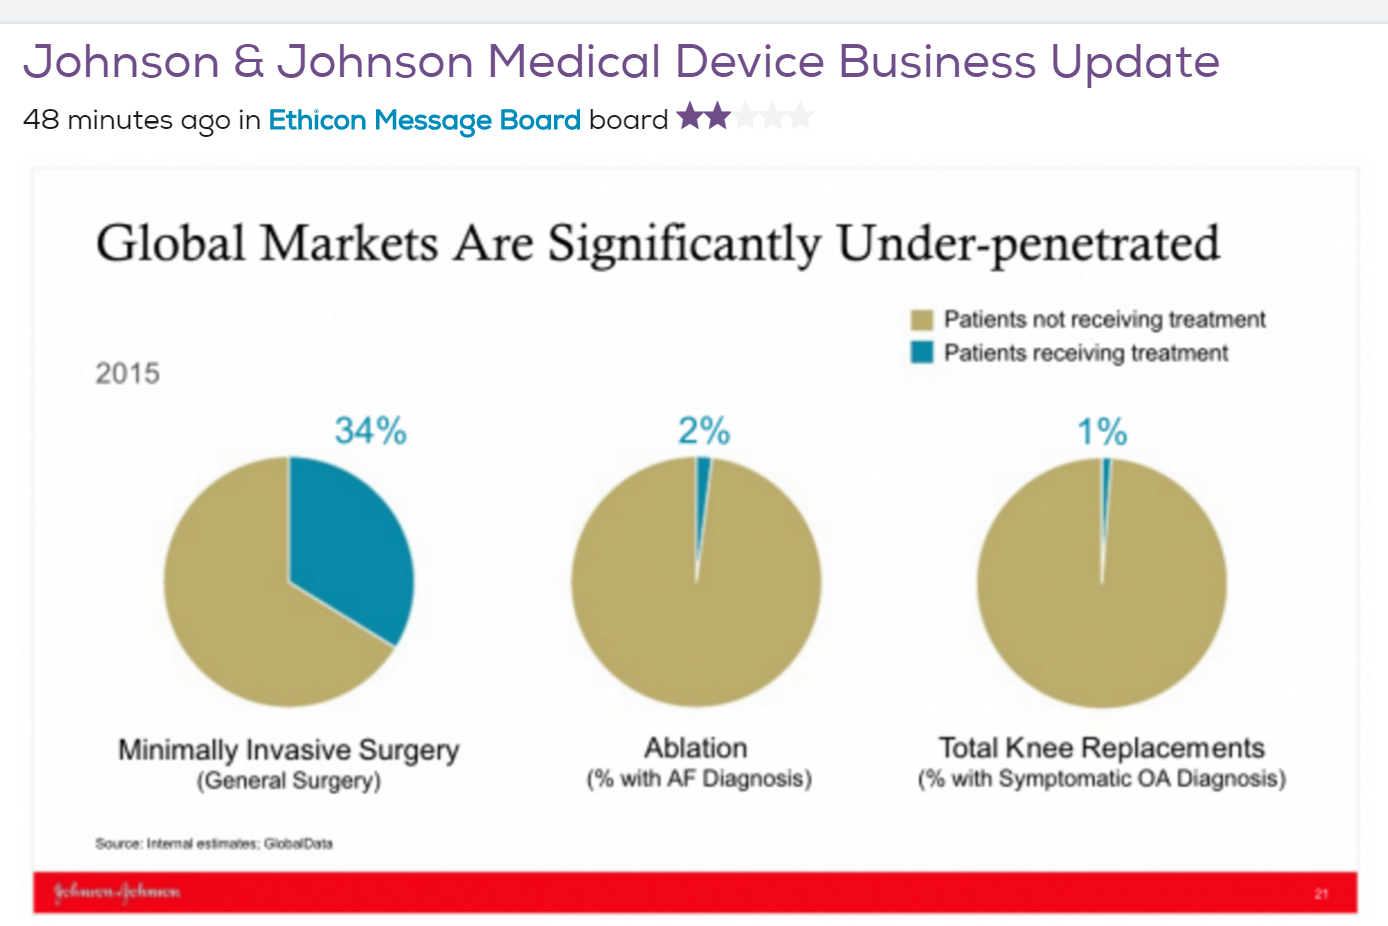 JNJ Manipulation of Facts Under Penetration is just a means to get investors ROI